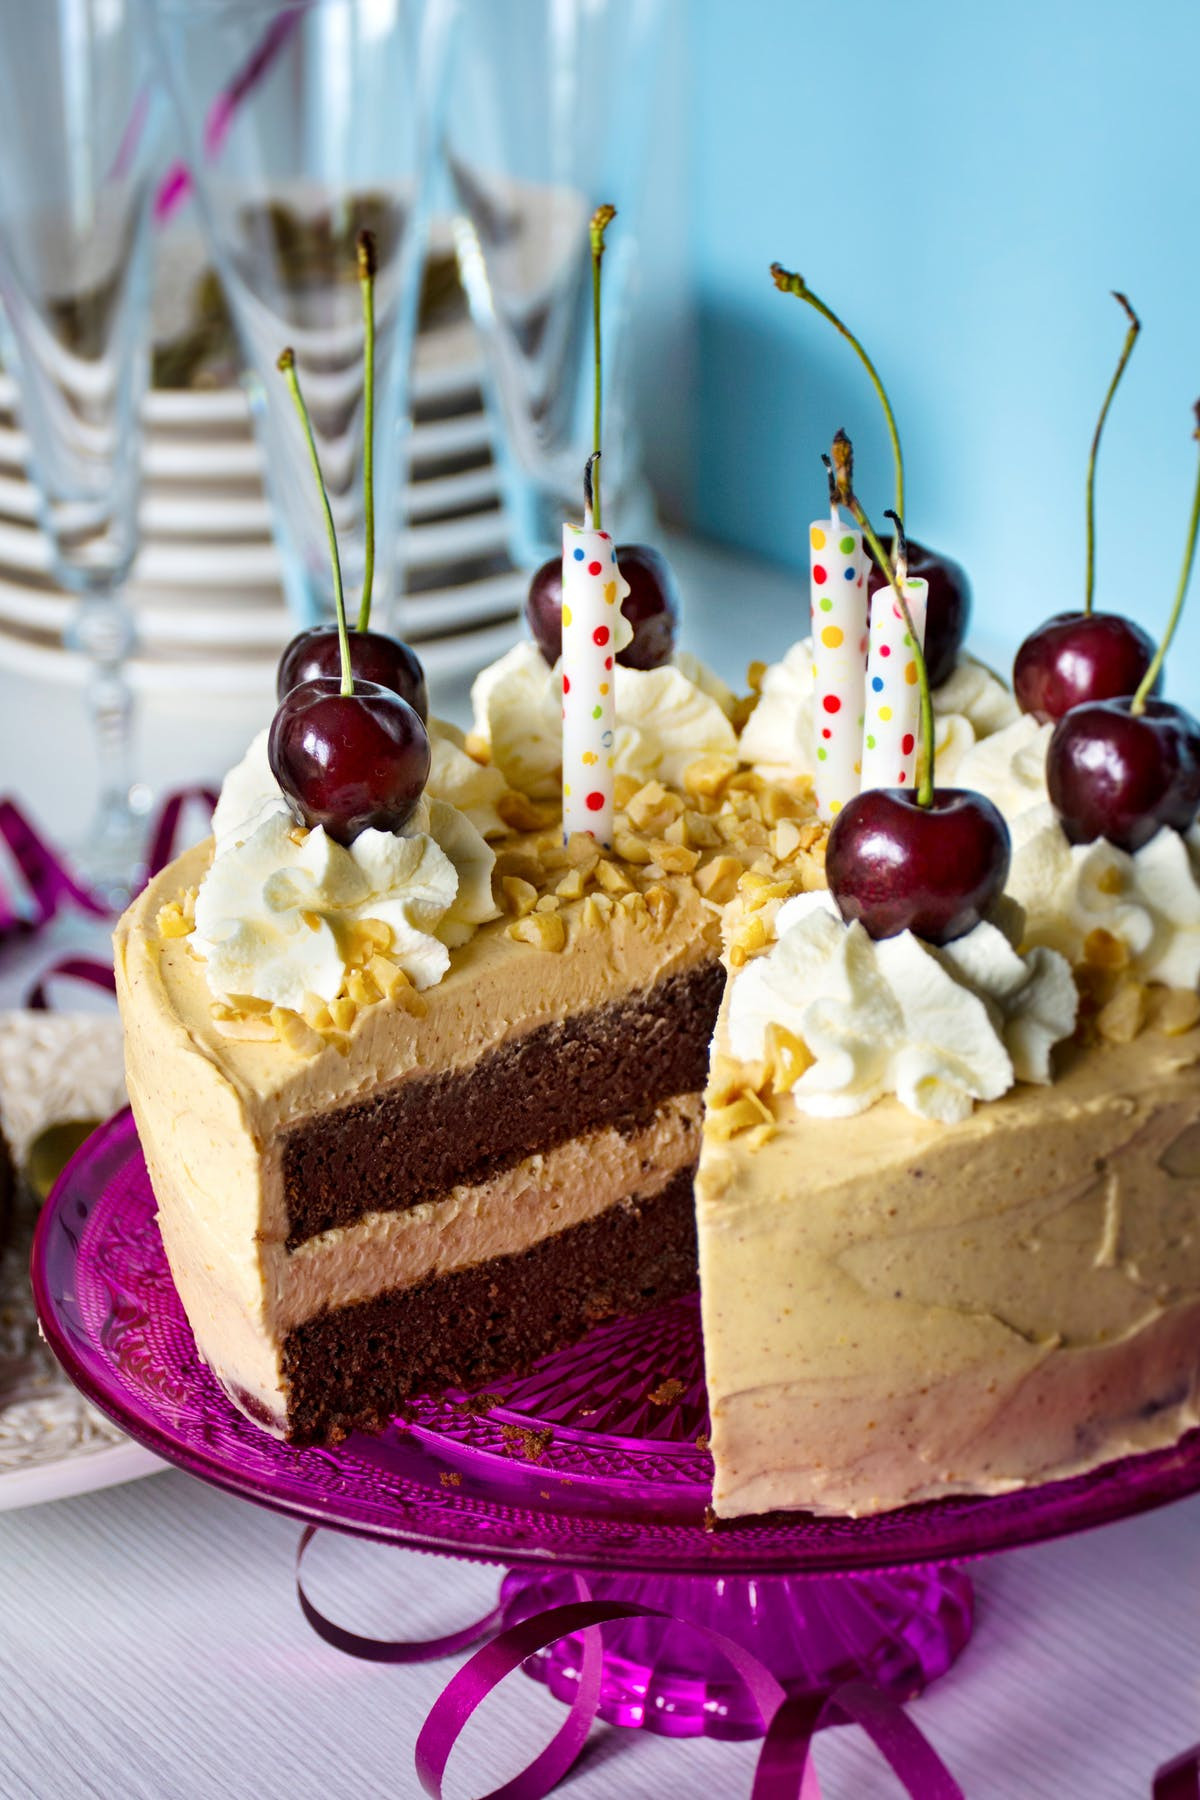 Best ideas about Keto Birthday Cake . Save or Pin Amazing Keto Chocolate Cake with Peanut Buttercream Diet Now.